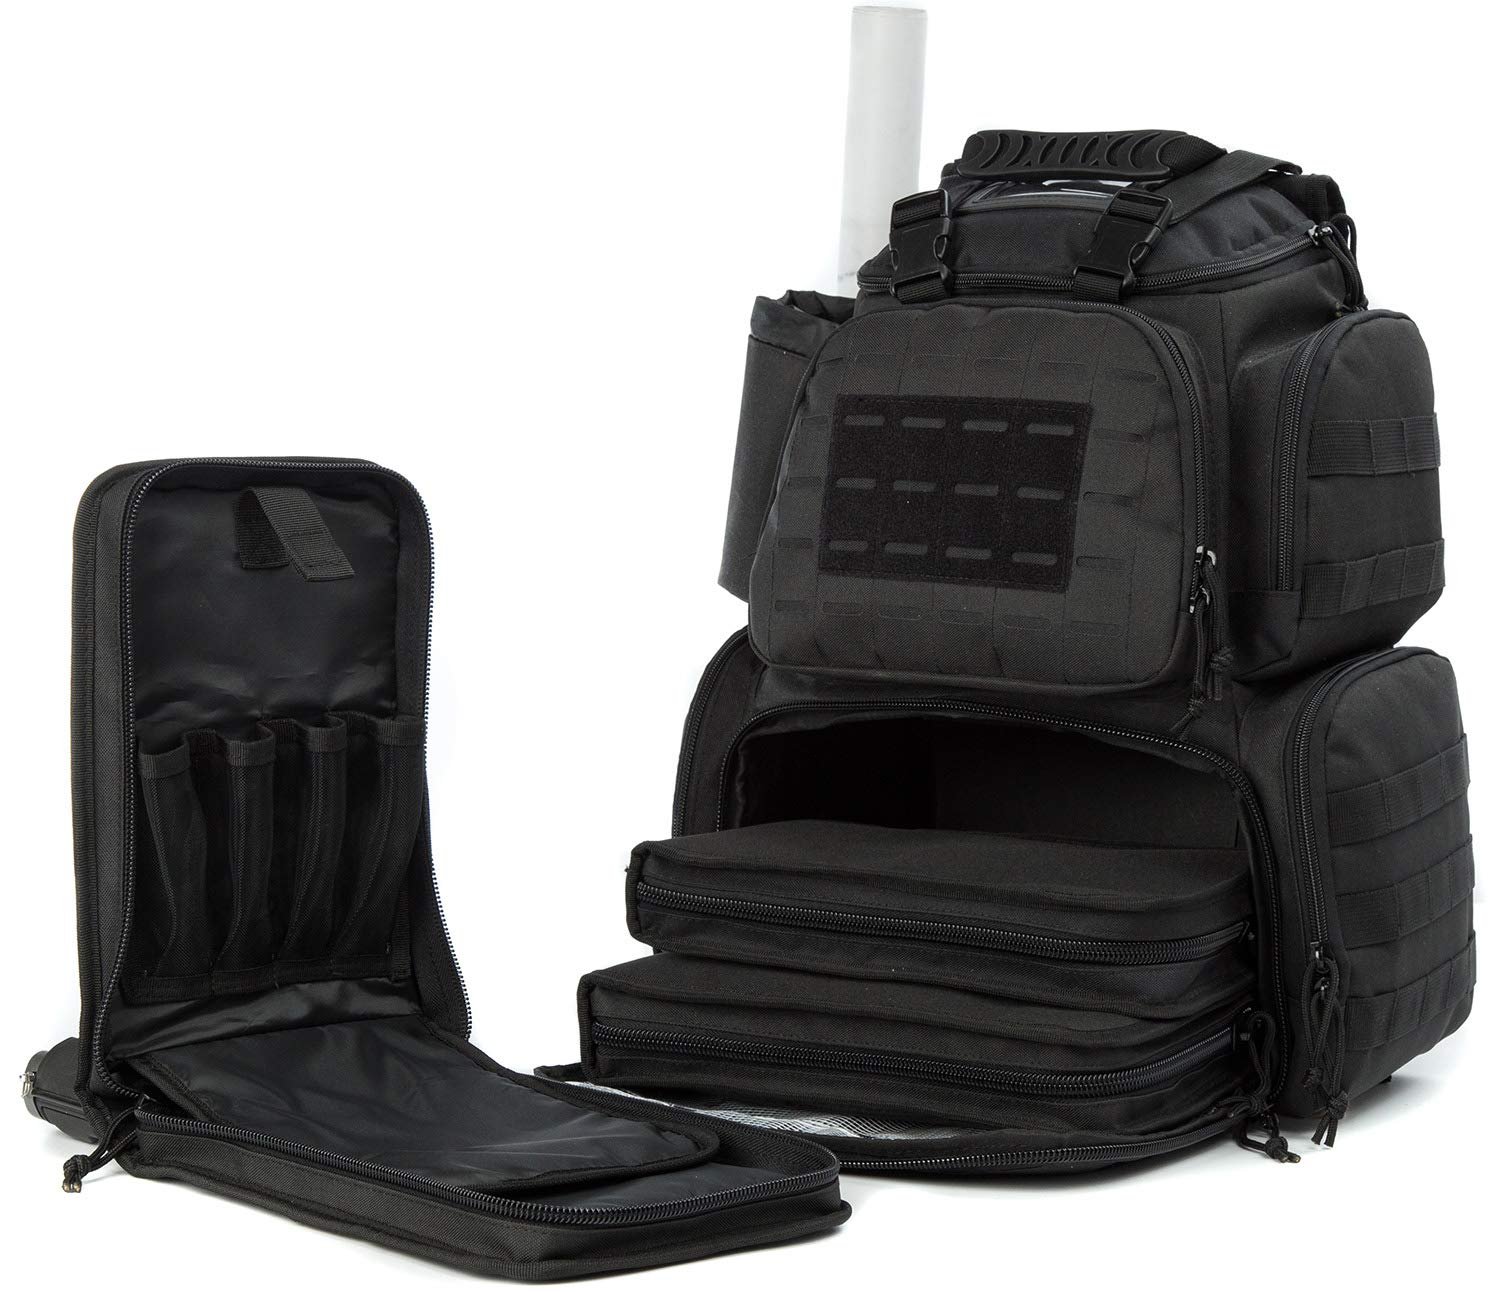 SUNLAND Range Bag Backpack,Gun Backpack with 3-Pistol Case and Protective Rain Cover,Tactical molle System & Lockable zippers-18'' x 14'' x 8'' (Blk)